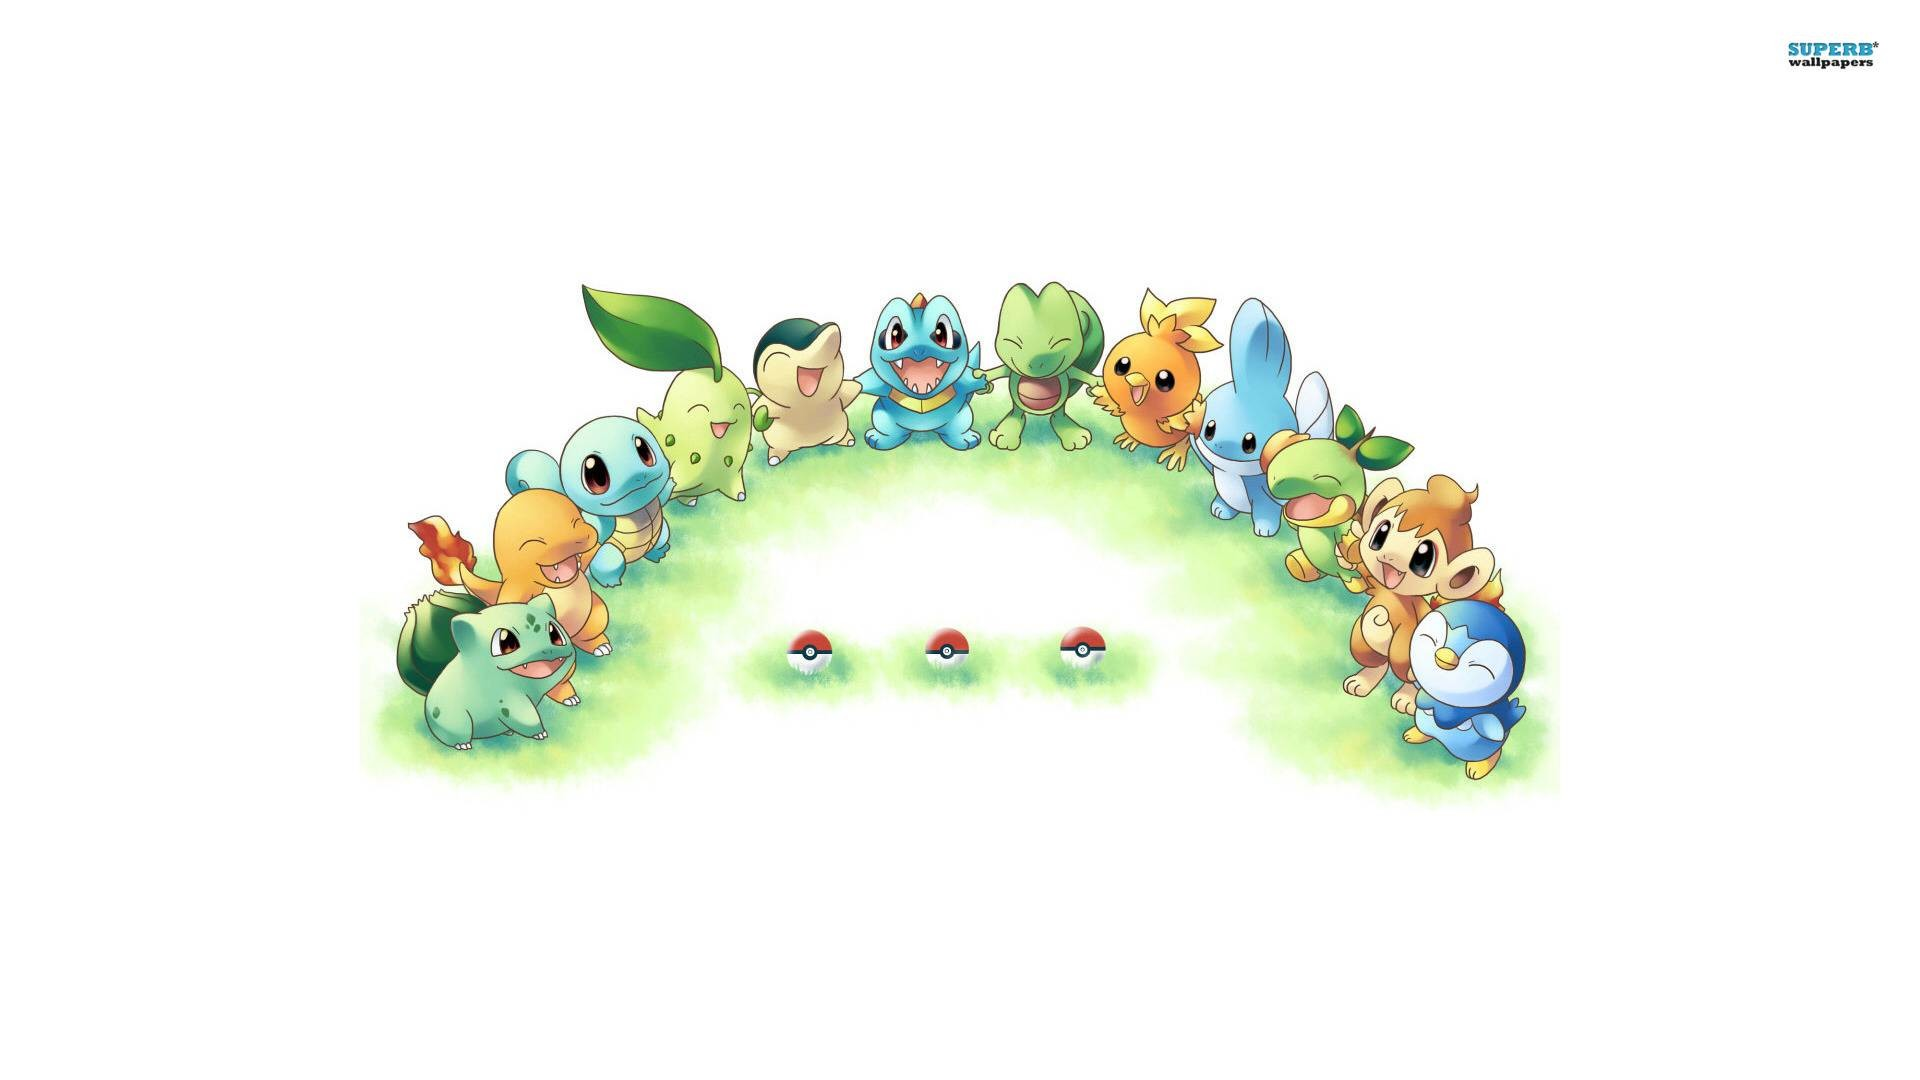 1920x1080 Wallpapers For > Cute Bulbasaur Wallpaper